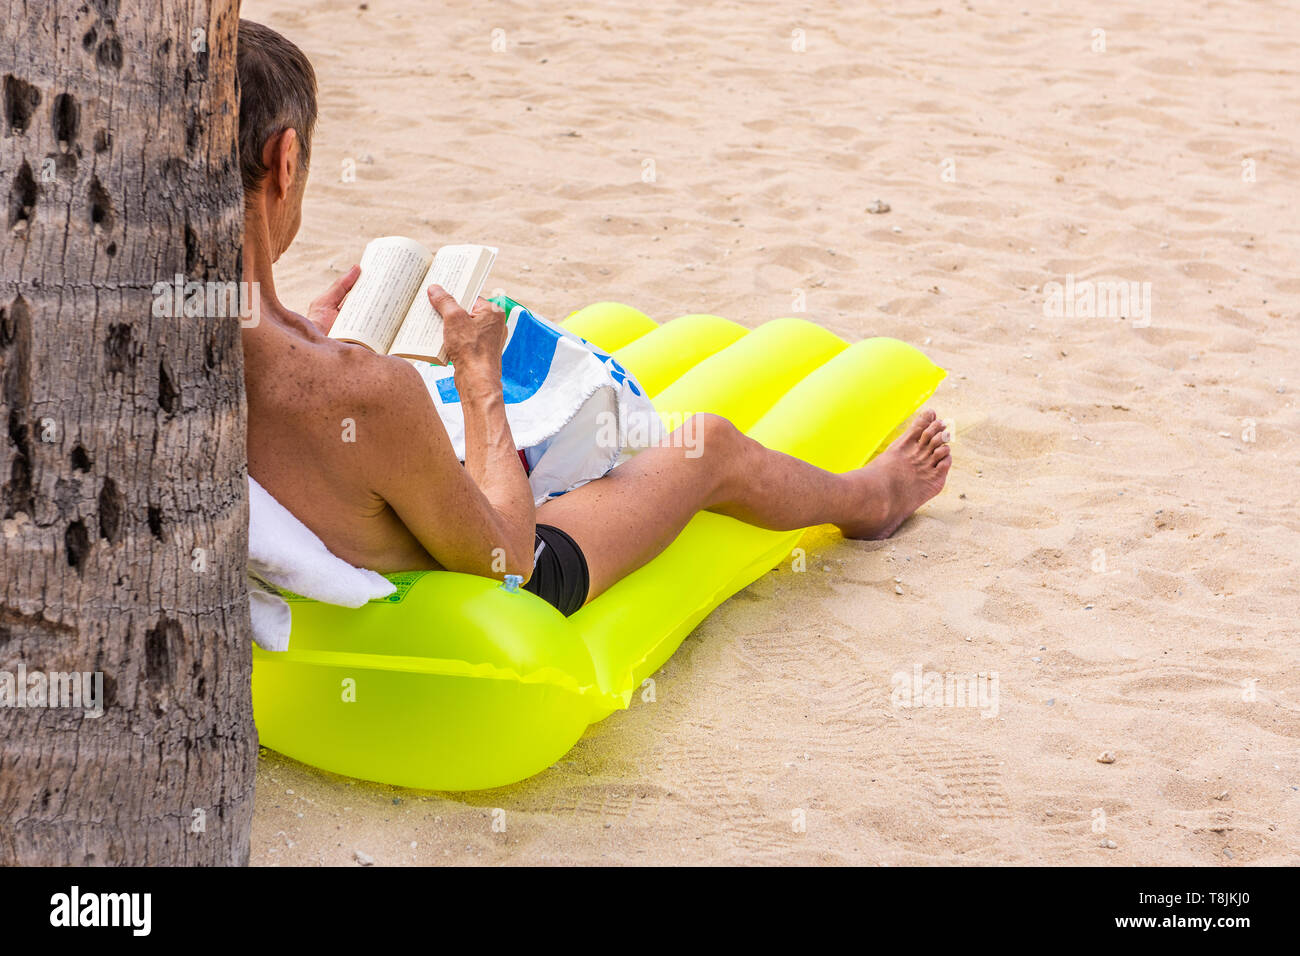 A man sitting off by himself reading a book on a yellow floatation device, Waikiki Beach, Hawaii, USA. Stock Photo